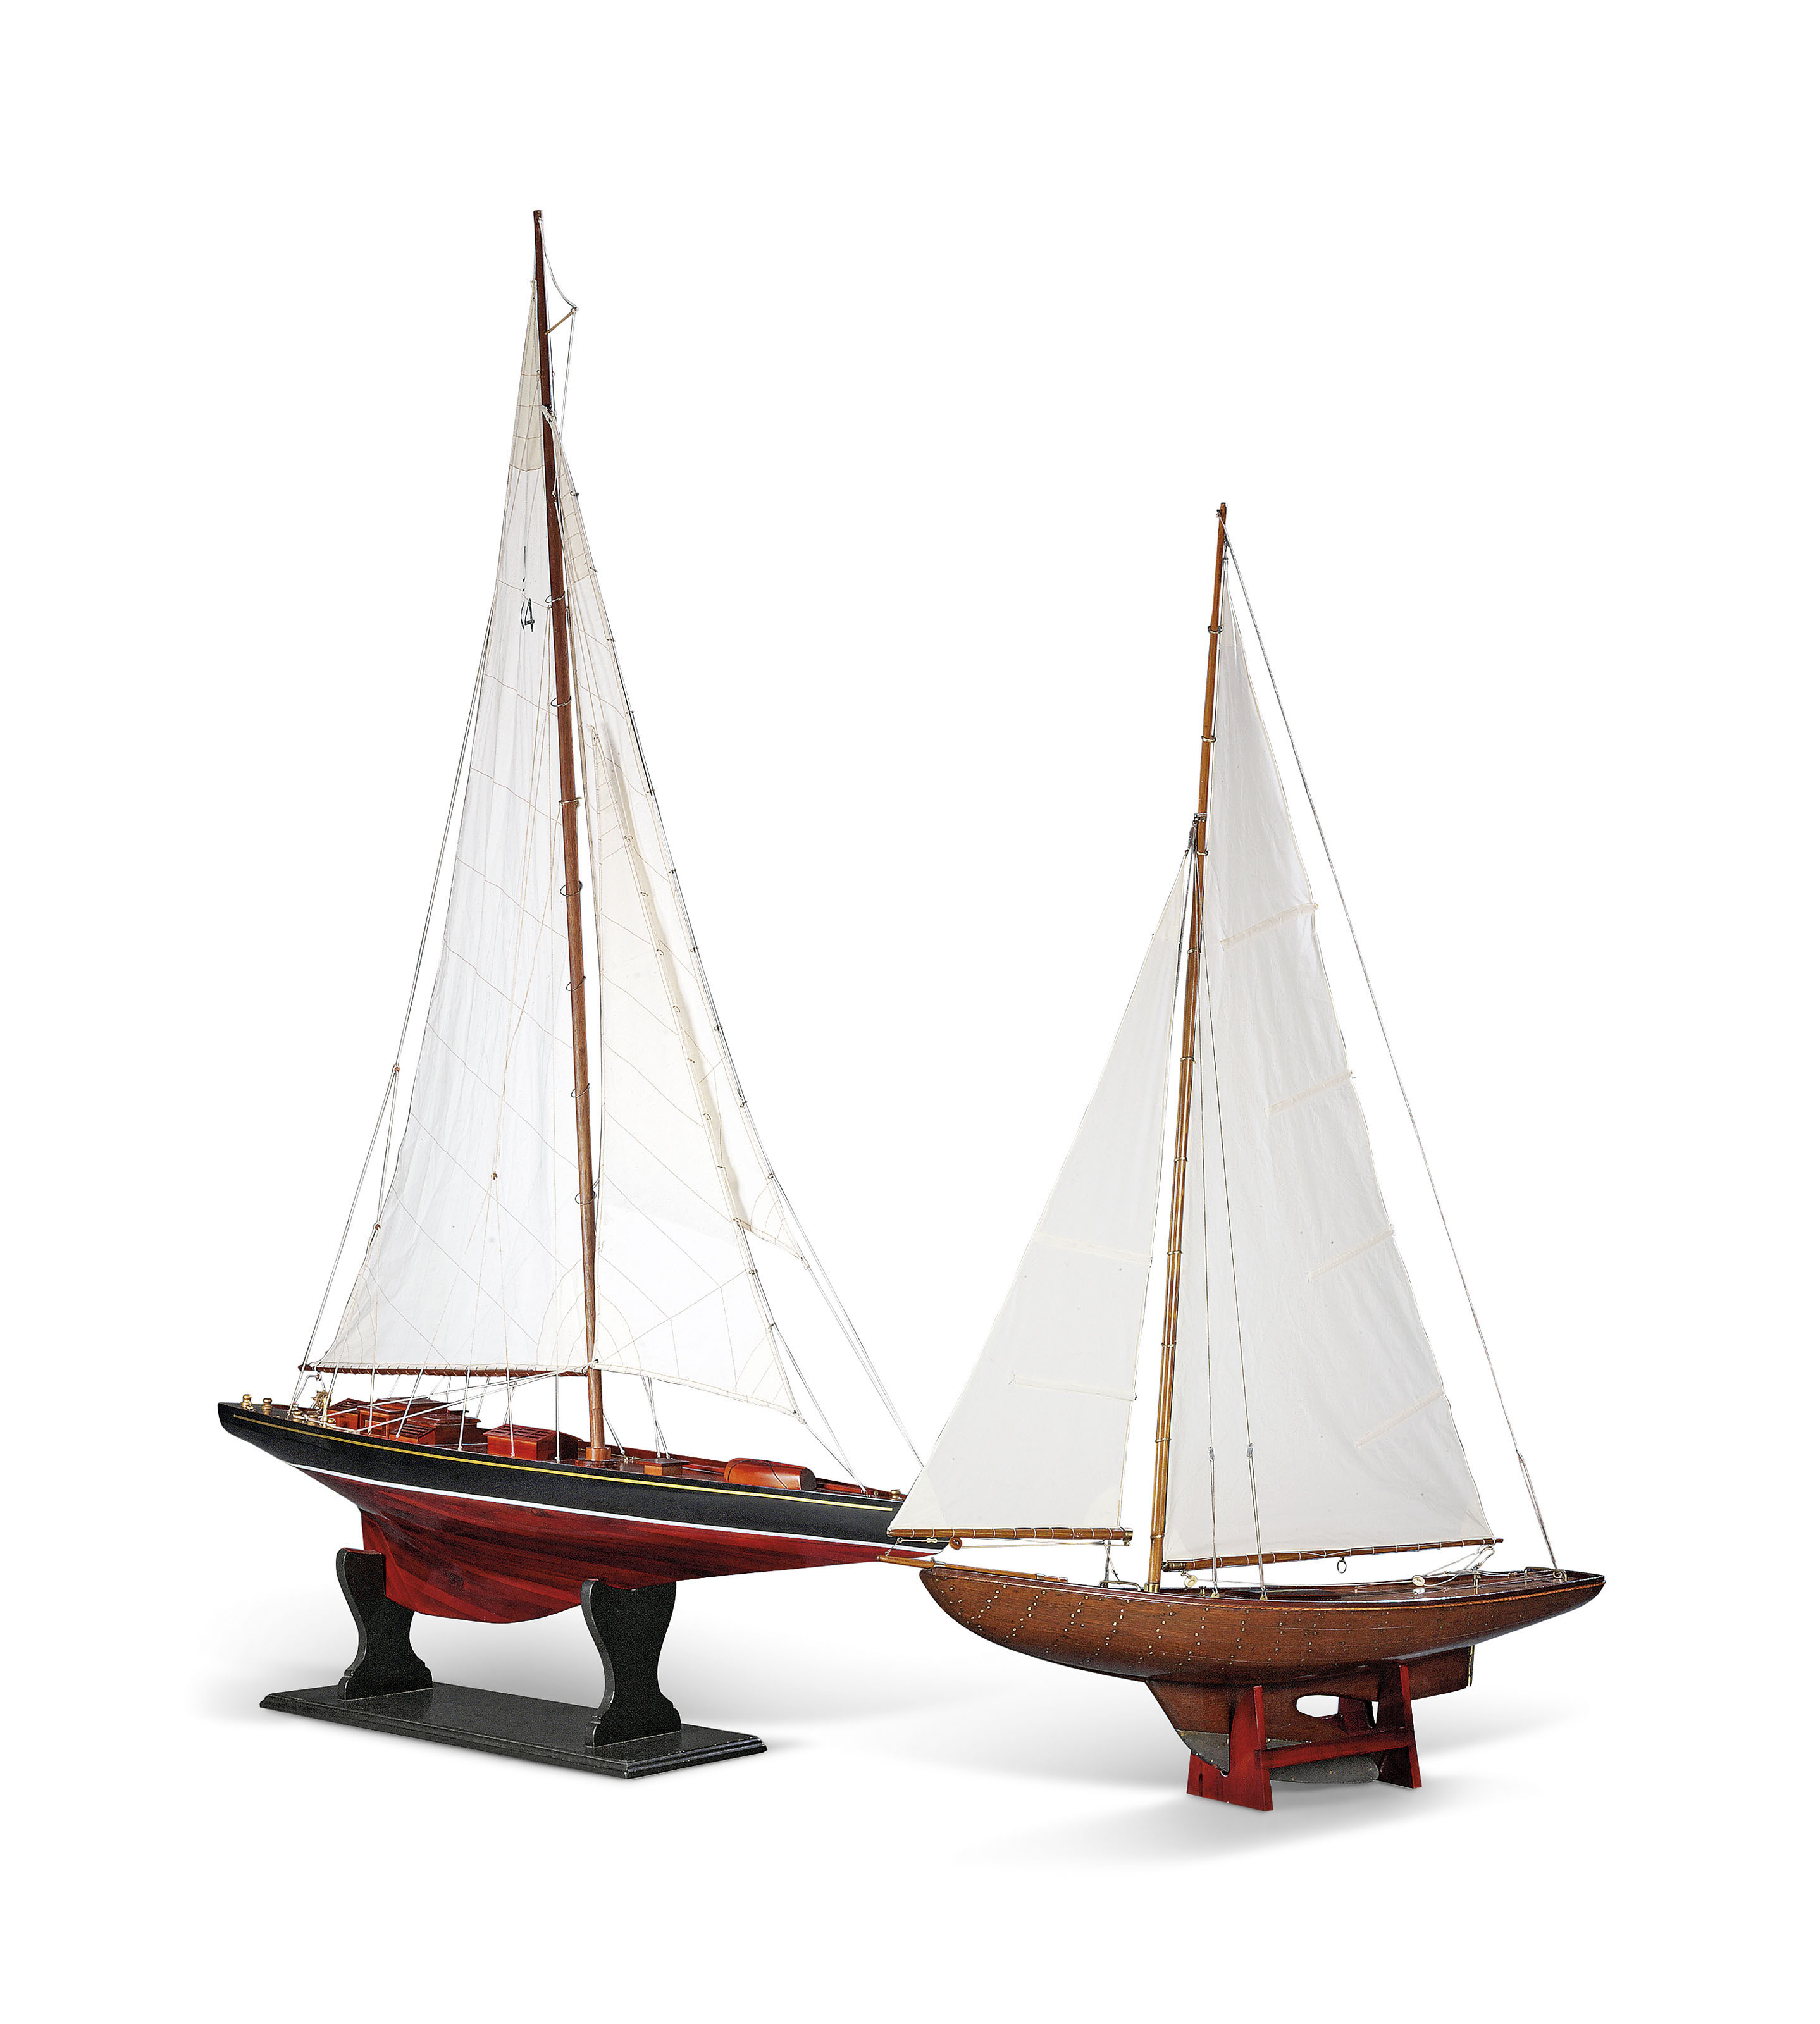 TWO MODELS OF SAILING BOATS | THE SMALLER, PINE, MID-20TH